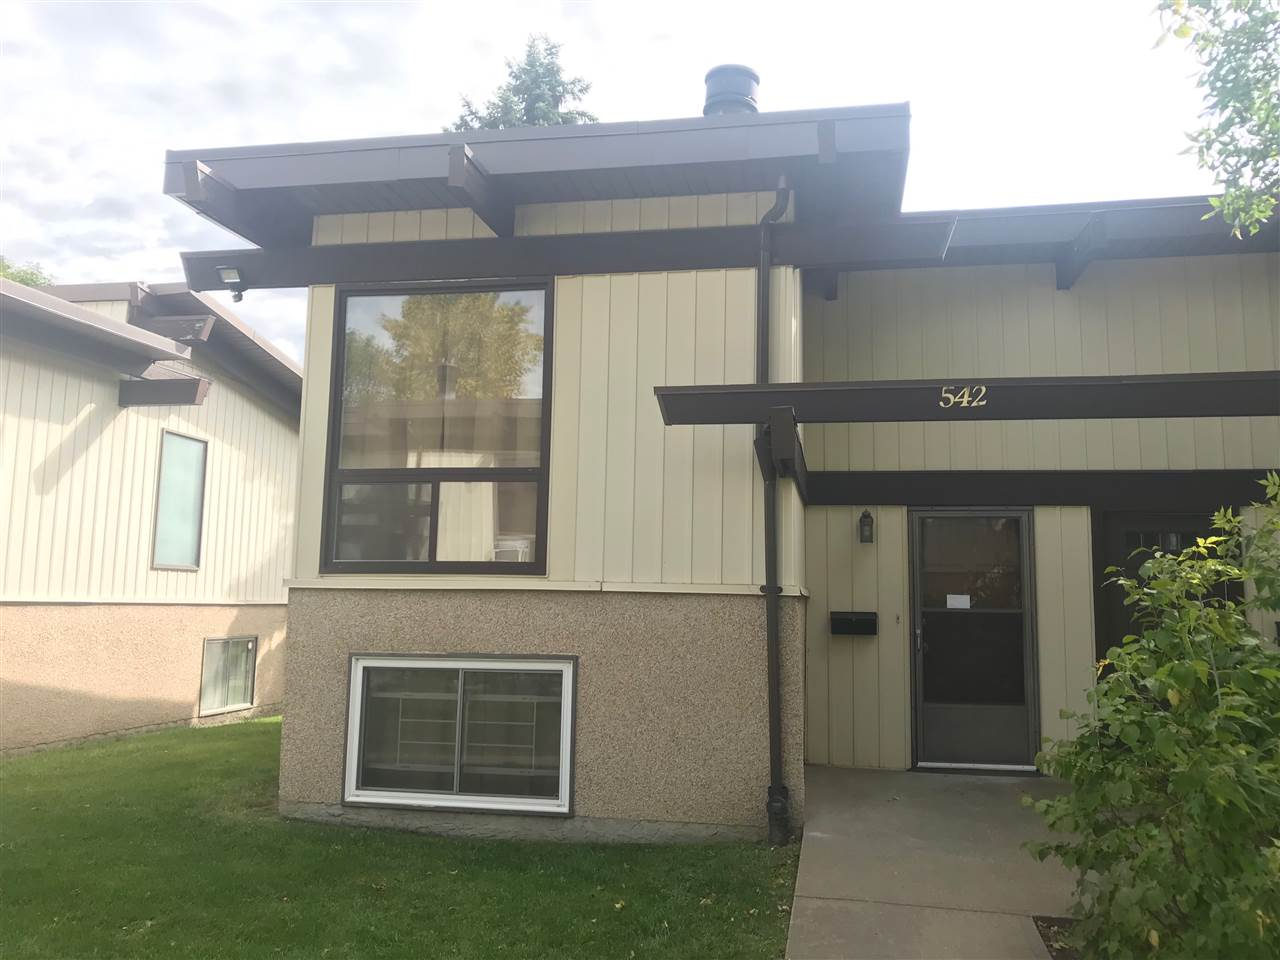 MLS® listing #E4172757 for sale located at 542 LEE_RIDGE Road